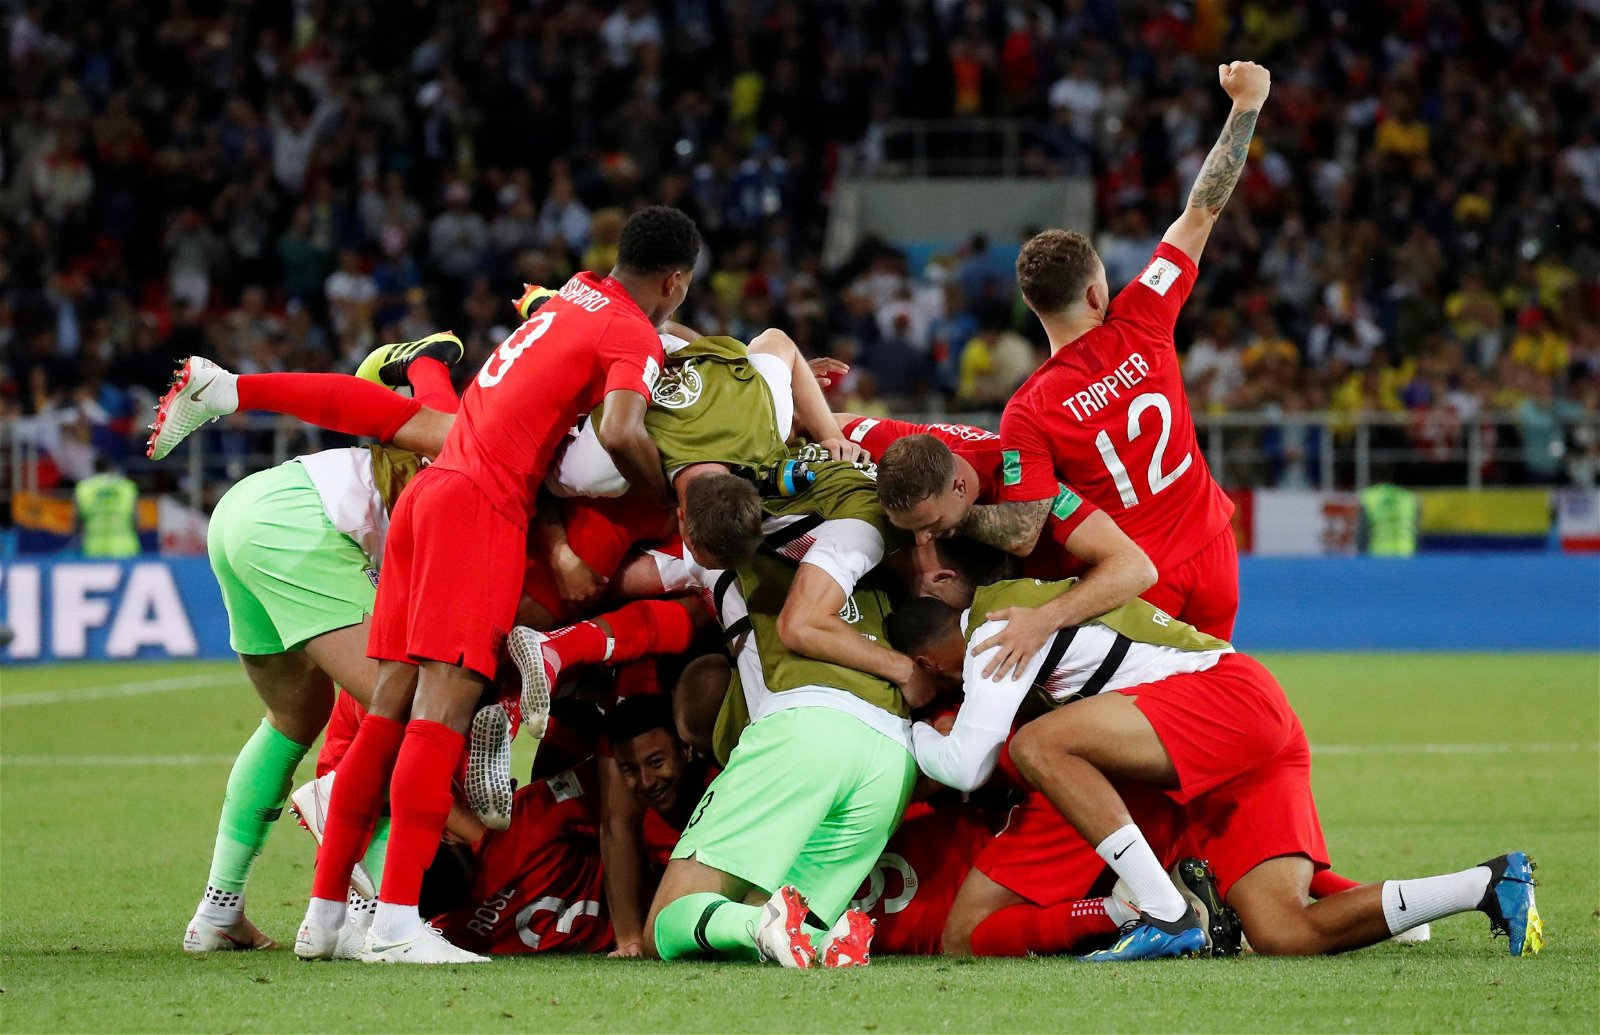 England pile on top of each other after winning a penalty shootout